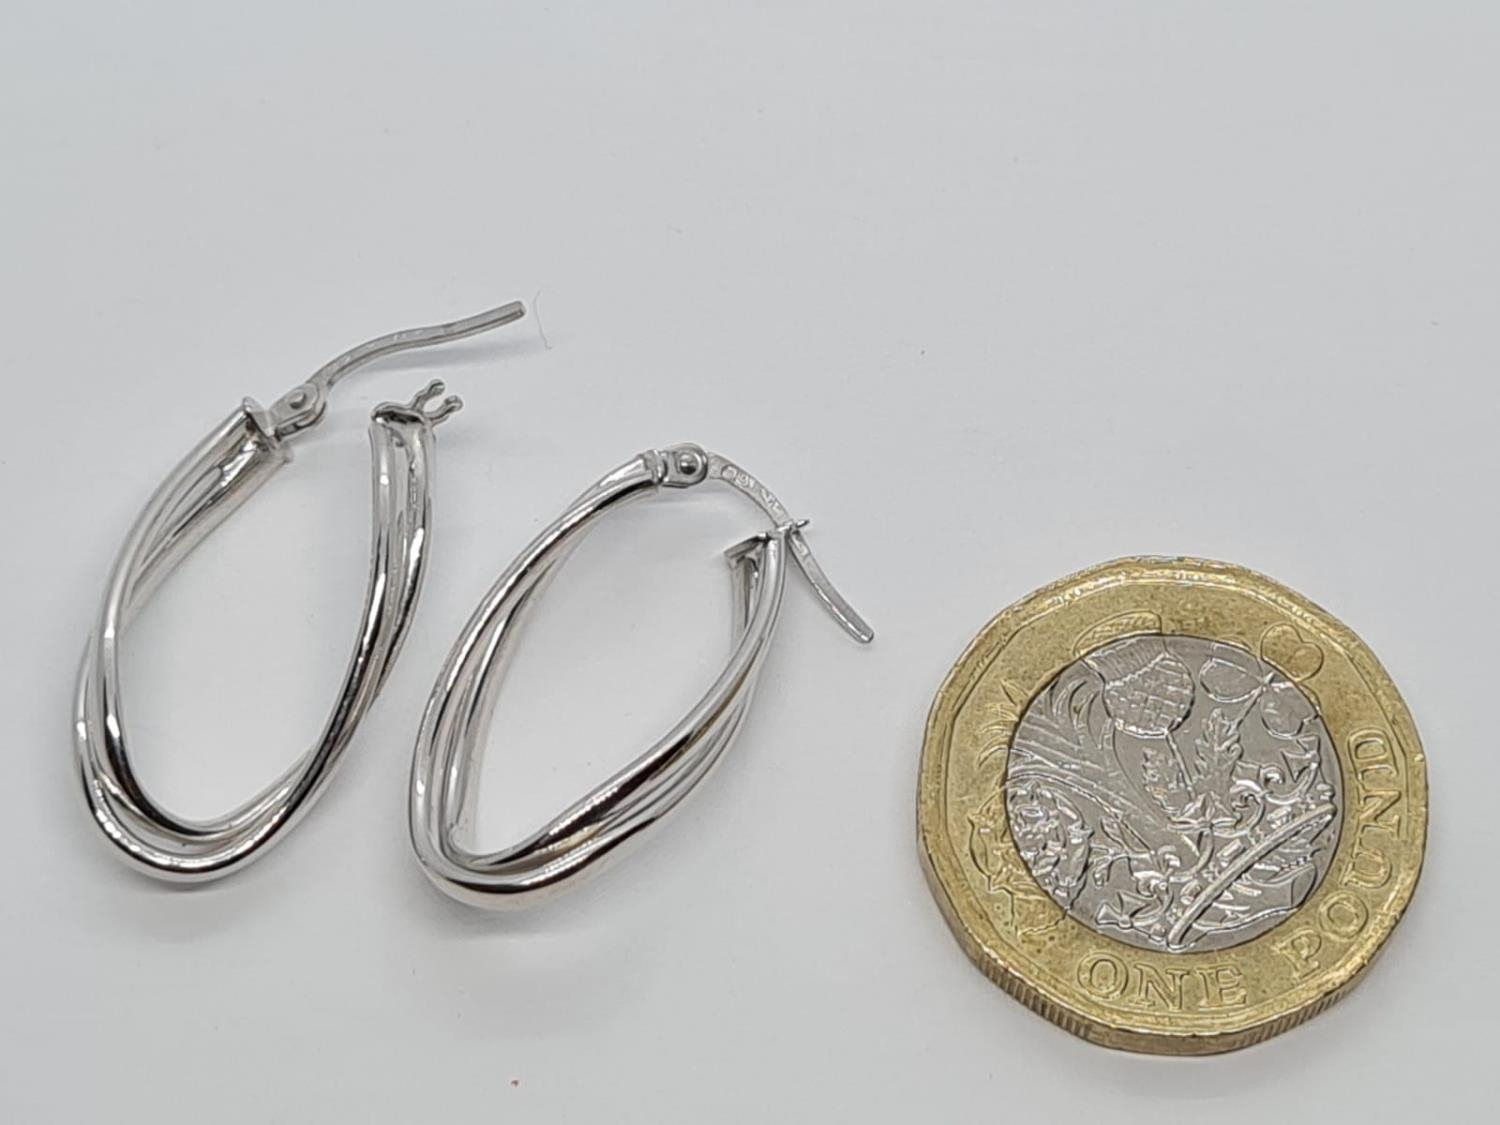 PAIR OF 9K WHITE GOLD CREOLE TWIST EARRINGS 1.5G - Image 3 of 3